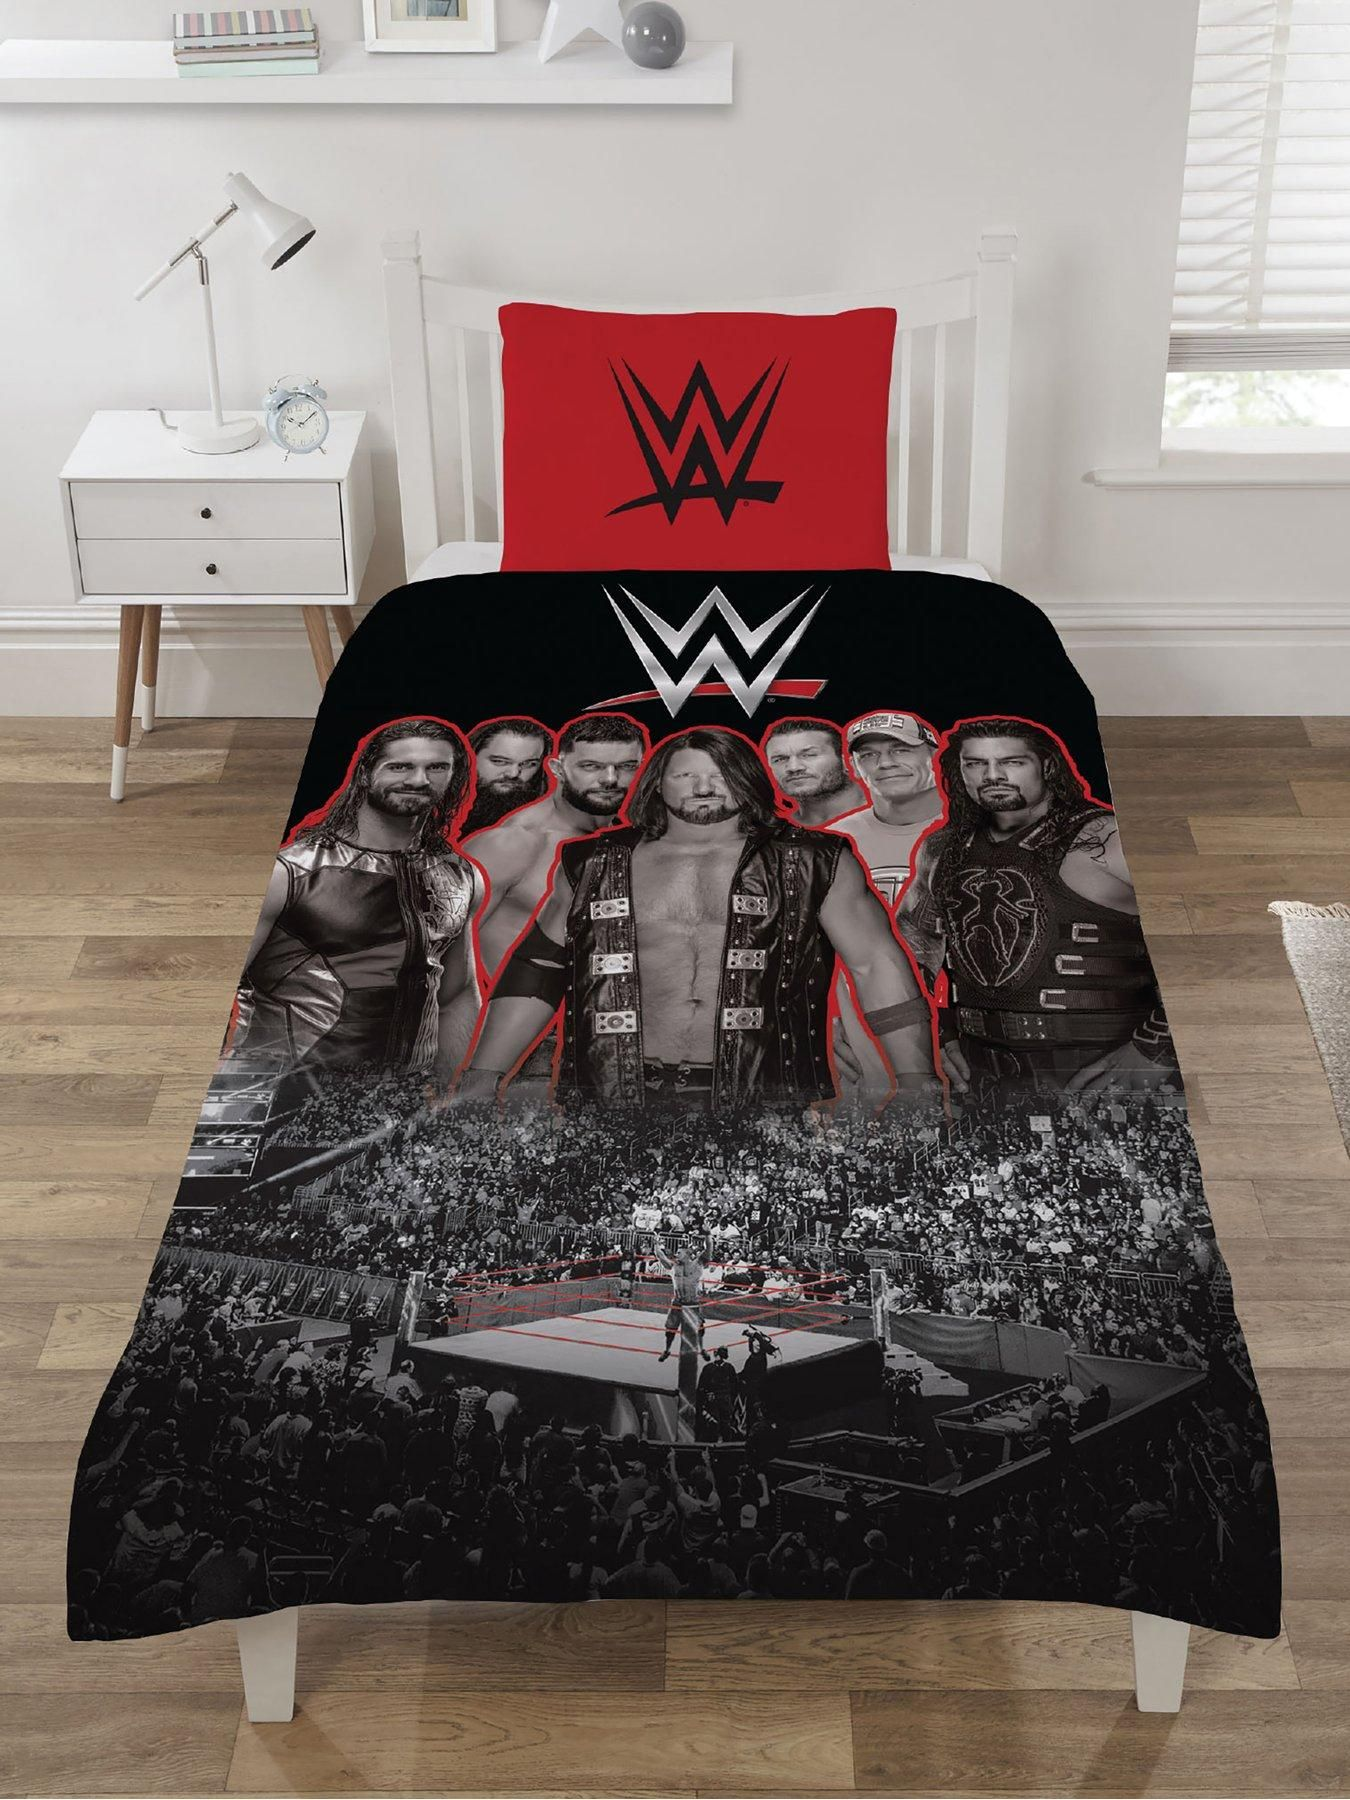 Wrestling Bettwäsche Bettwäschegarnituren New Wwe Wrestling Smackdown Vs Raw Reversible Bedding Set Single Double Duvet Möbel & Wohnen